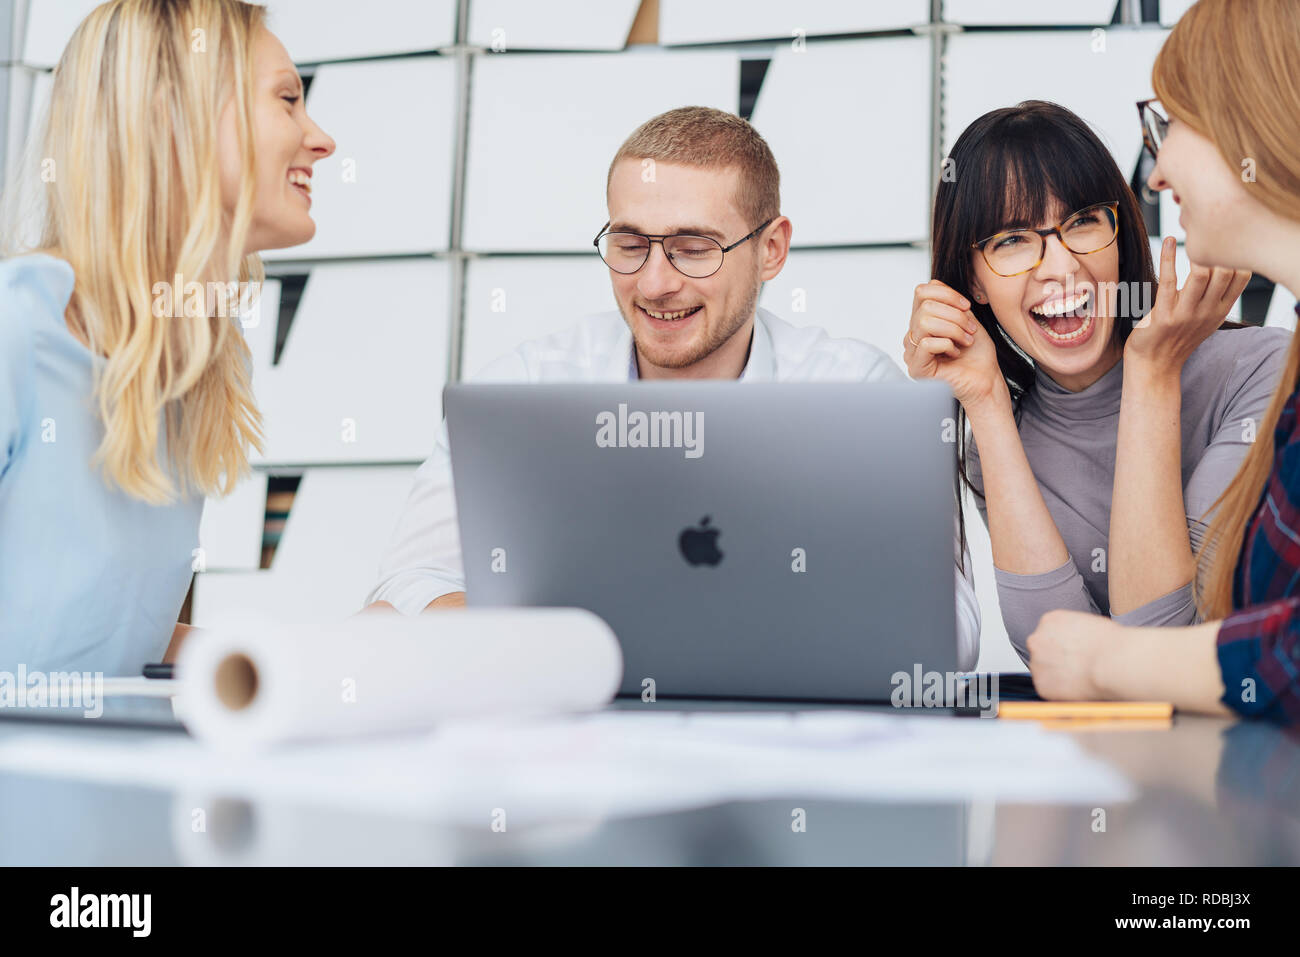 Group of young business people enjoying a joke laughing merrily while working together around an office table - Stock Image